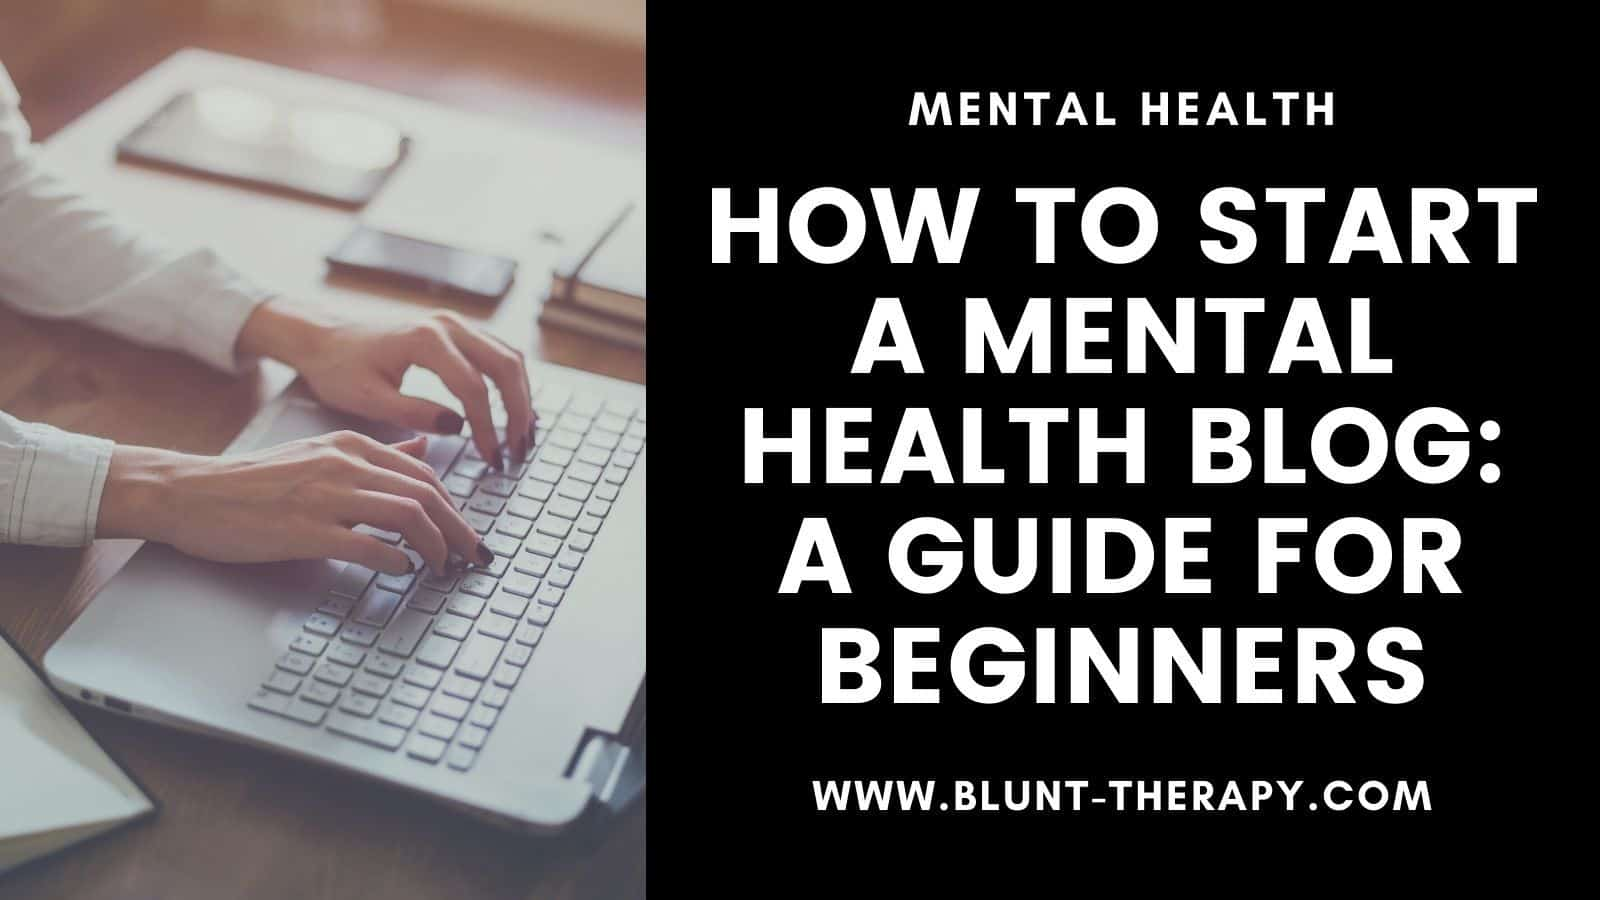 How To Start A Mental Health Blog: A Guide for Beginners